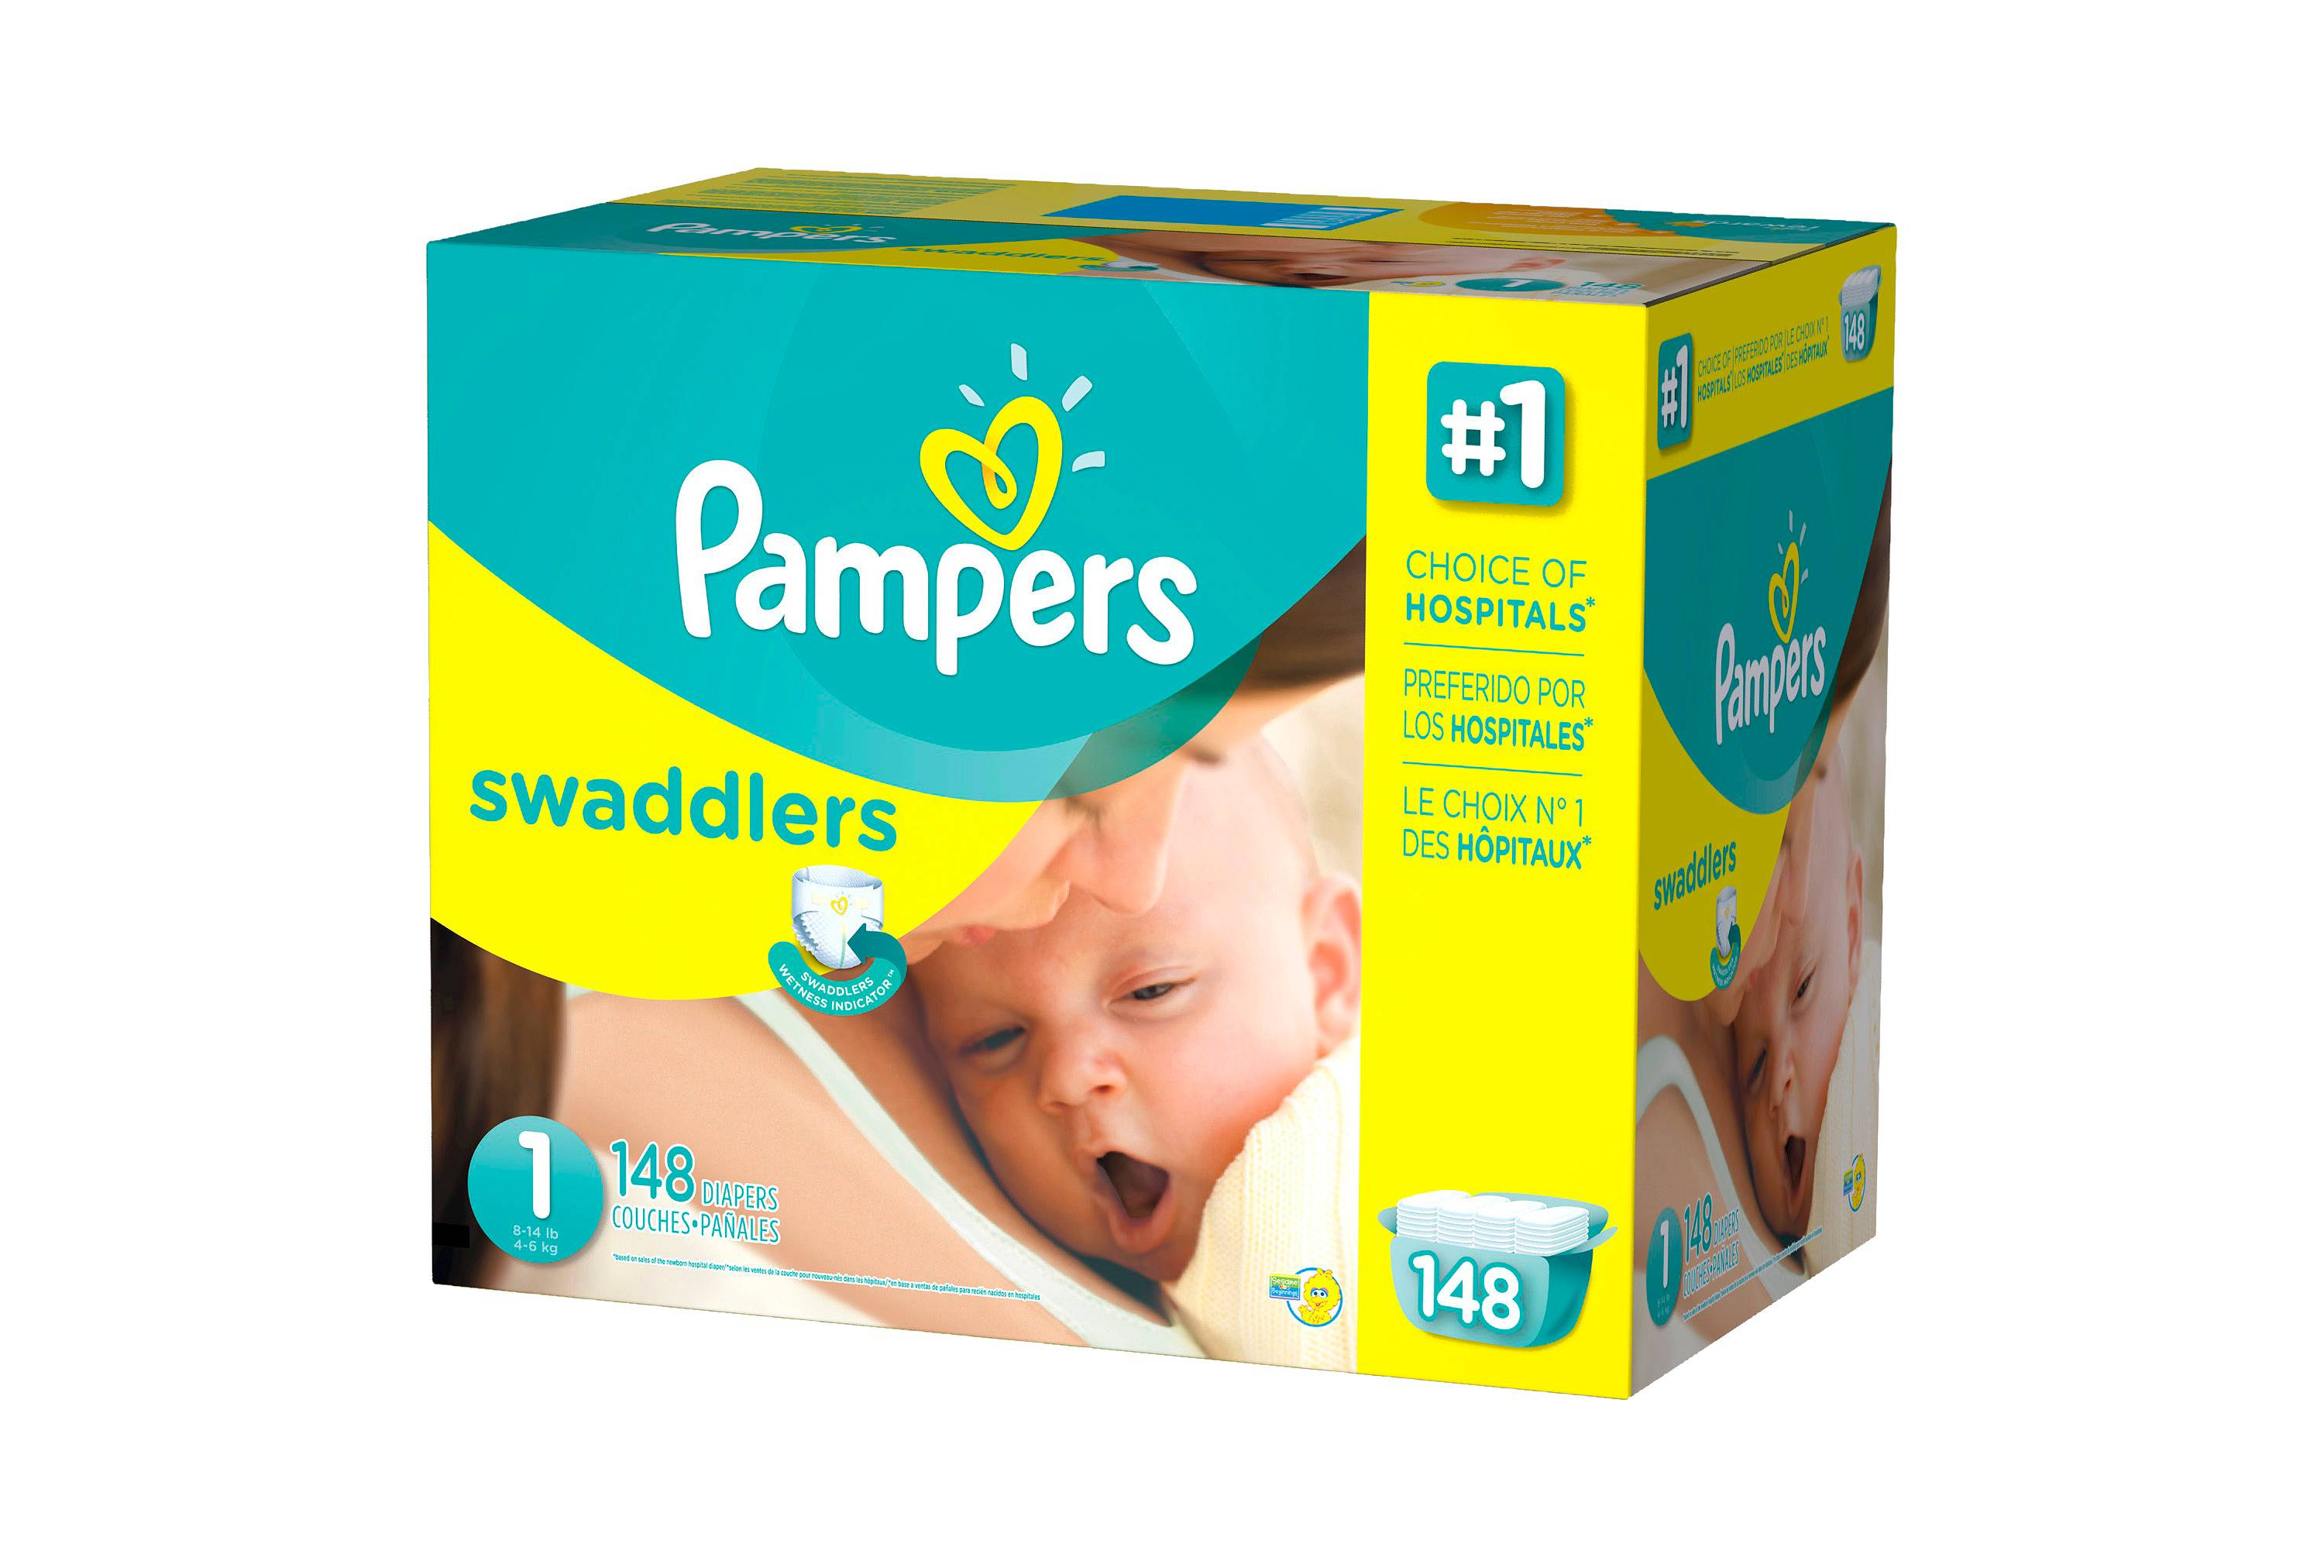 pampers swaddlers coupons - HD3000×2024